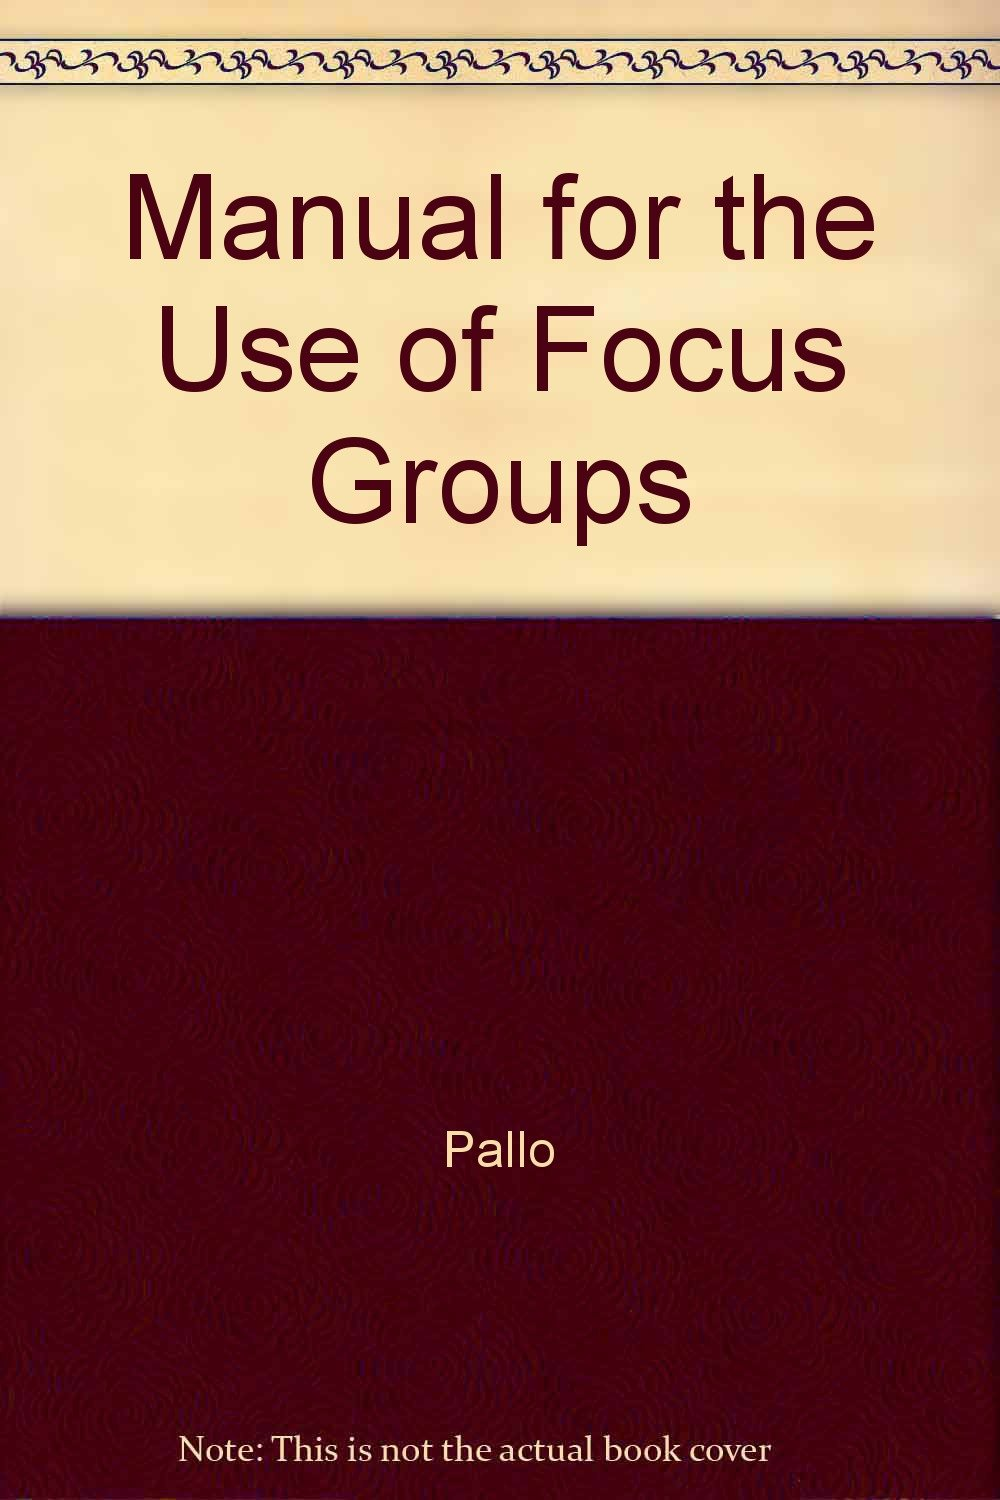 Manual for the Use of Focus Groups: Pallo: 9780963552228: Amazon.com: Books